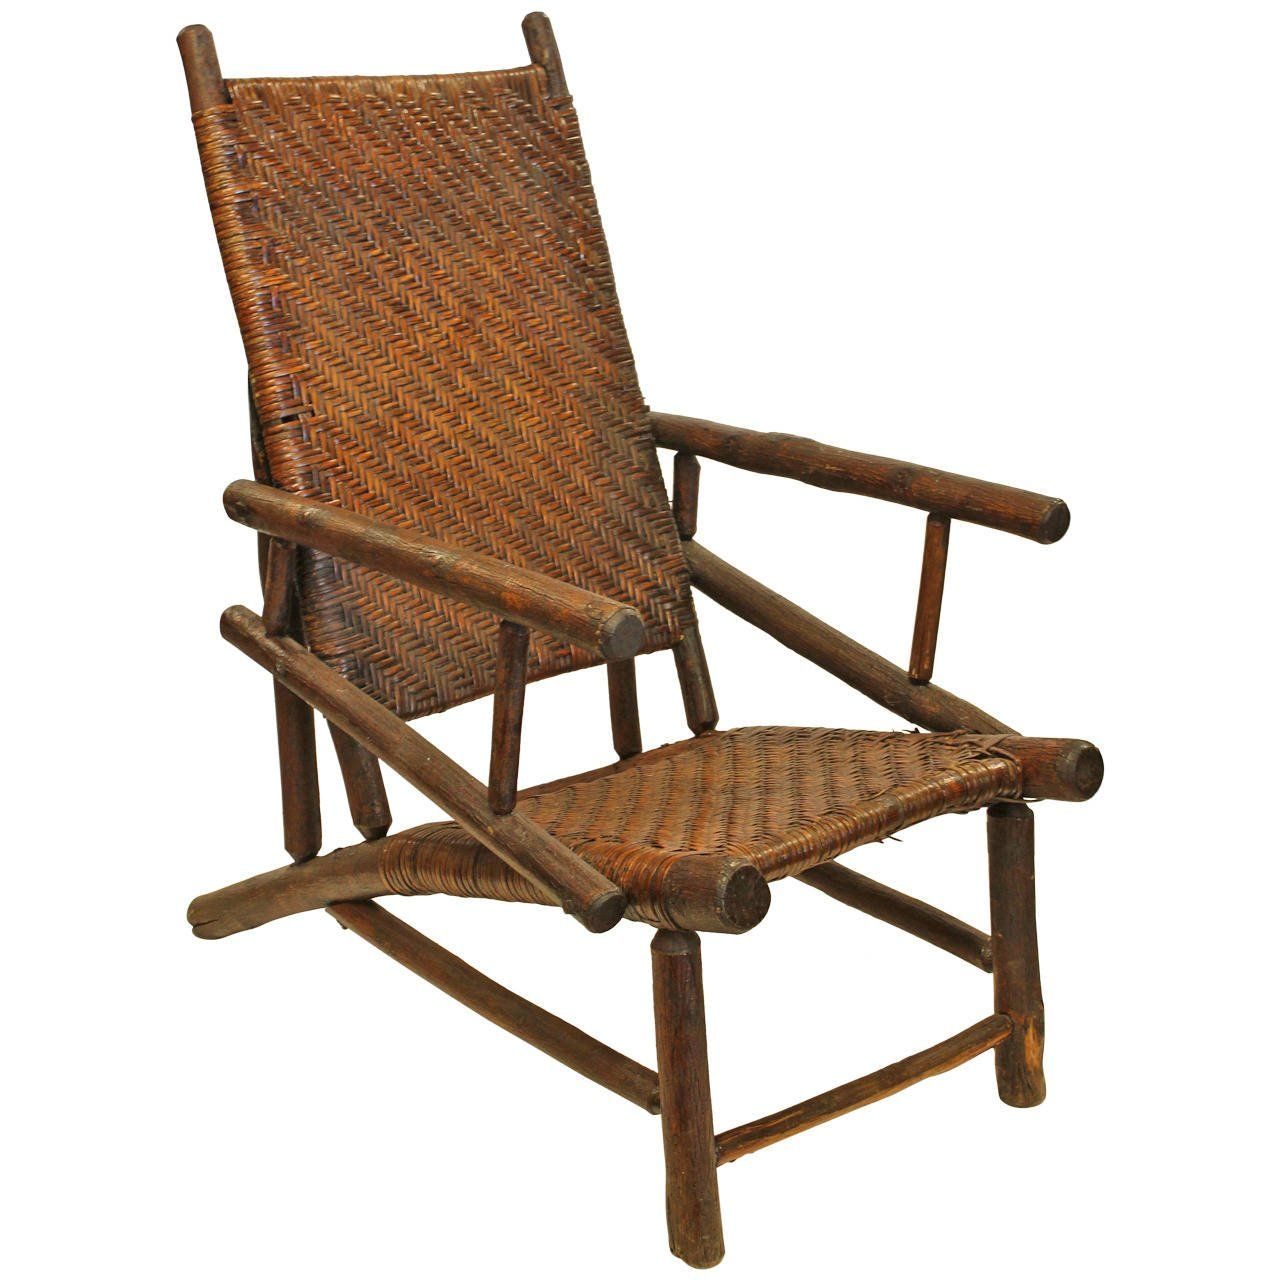 Rare Large Old Hickory Lounge Armchair For Sale at 1stdibs